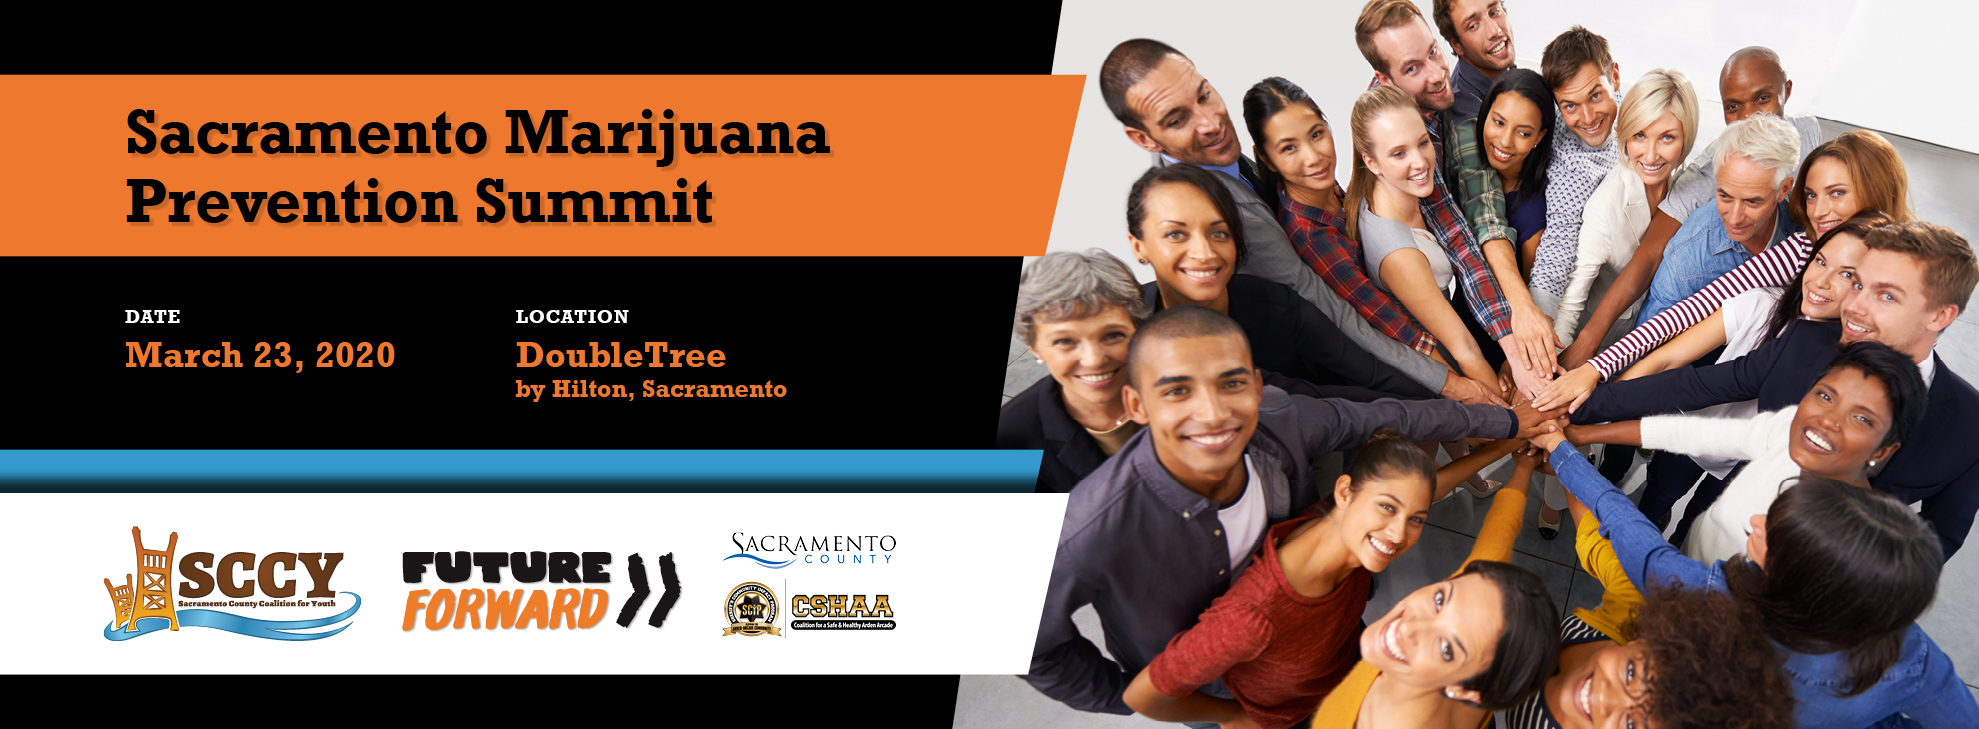 Sacramento Marijuana Prevention Summit